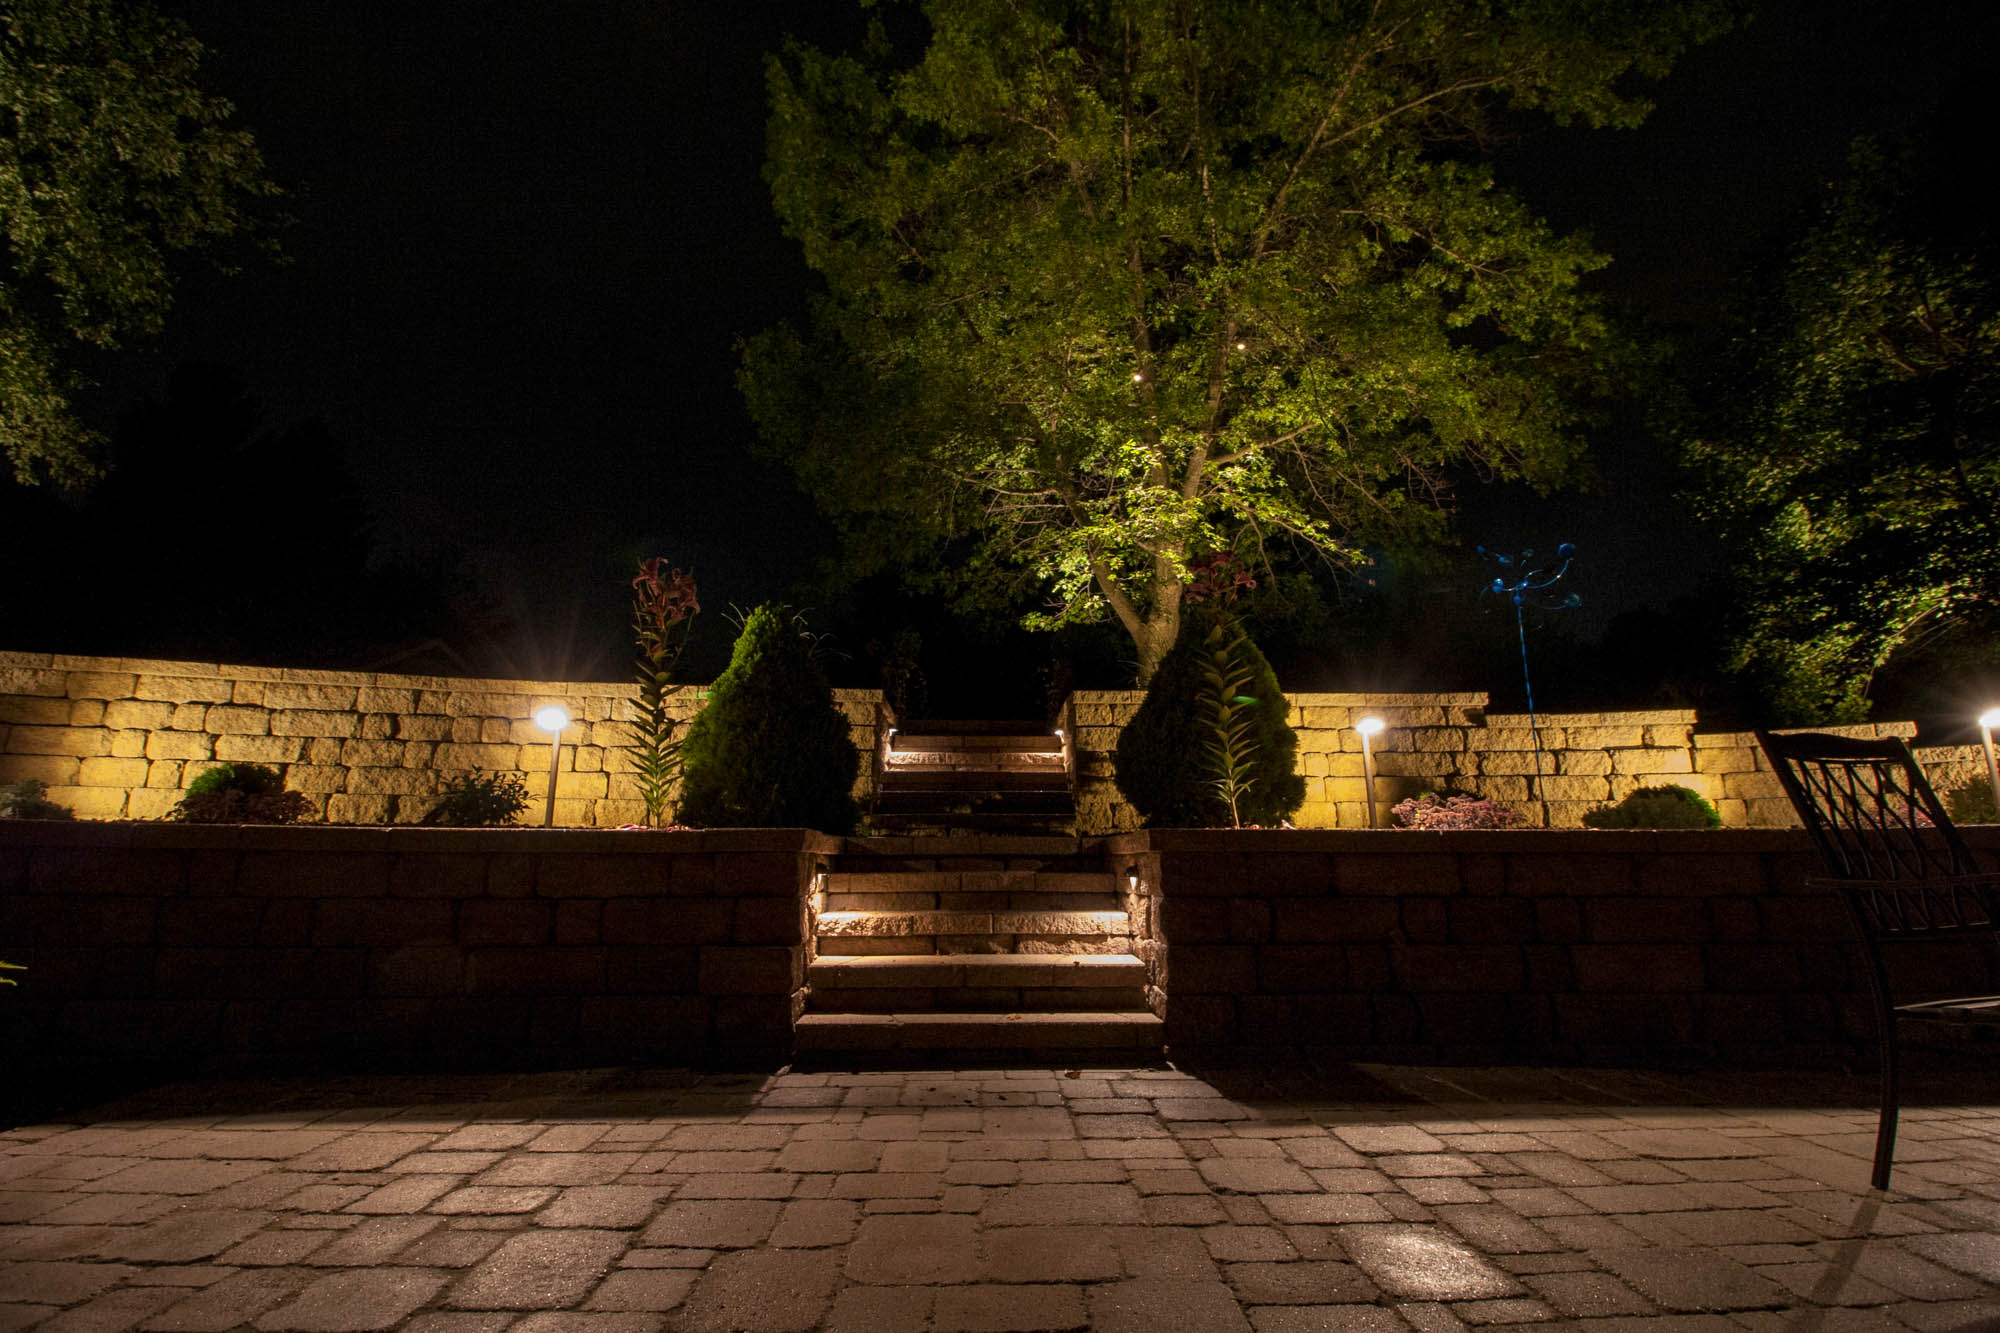 pewaukee landscape outdoor lighting night owl walkways steps patios security safety